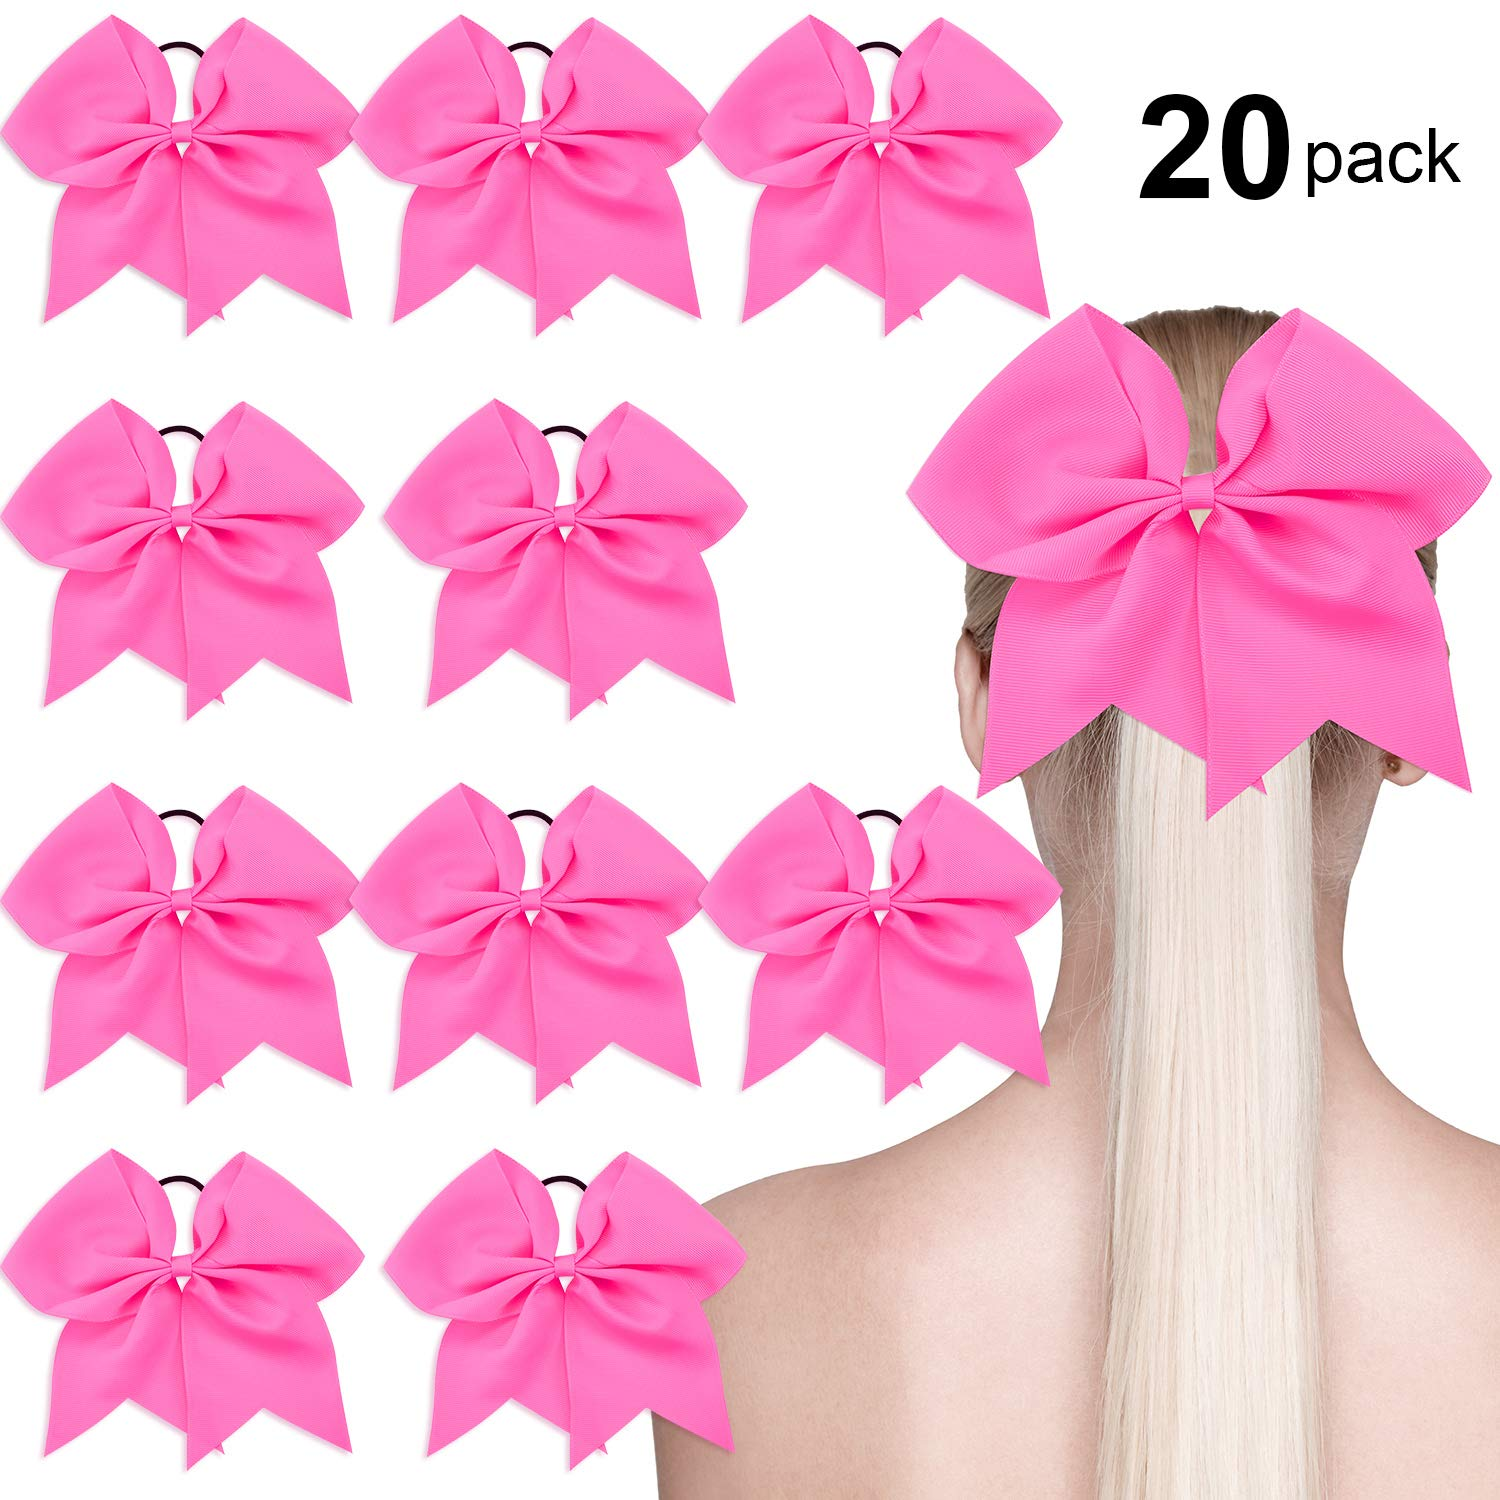 low price sale low price sale new high quality 20 Pack Breast Cancer Awareness Cheerleading Hair Bow Ponytail Holder Large  Bow Hair Tie for Cheerleader Girls, Hot Pink, 7 Inch